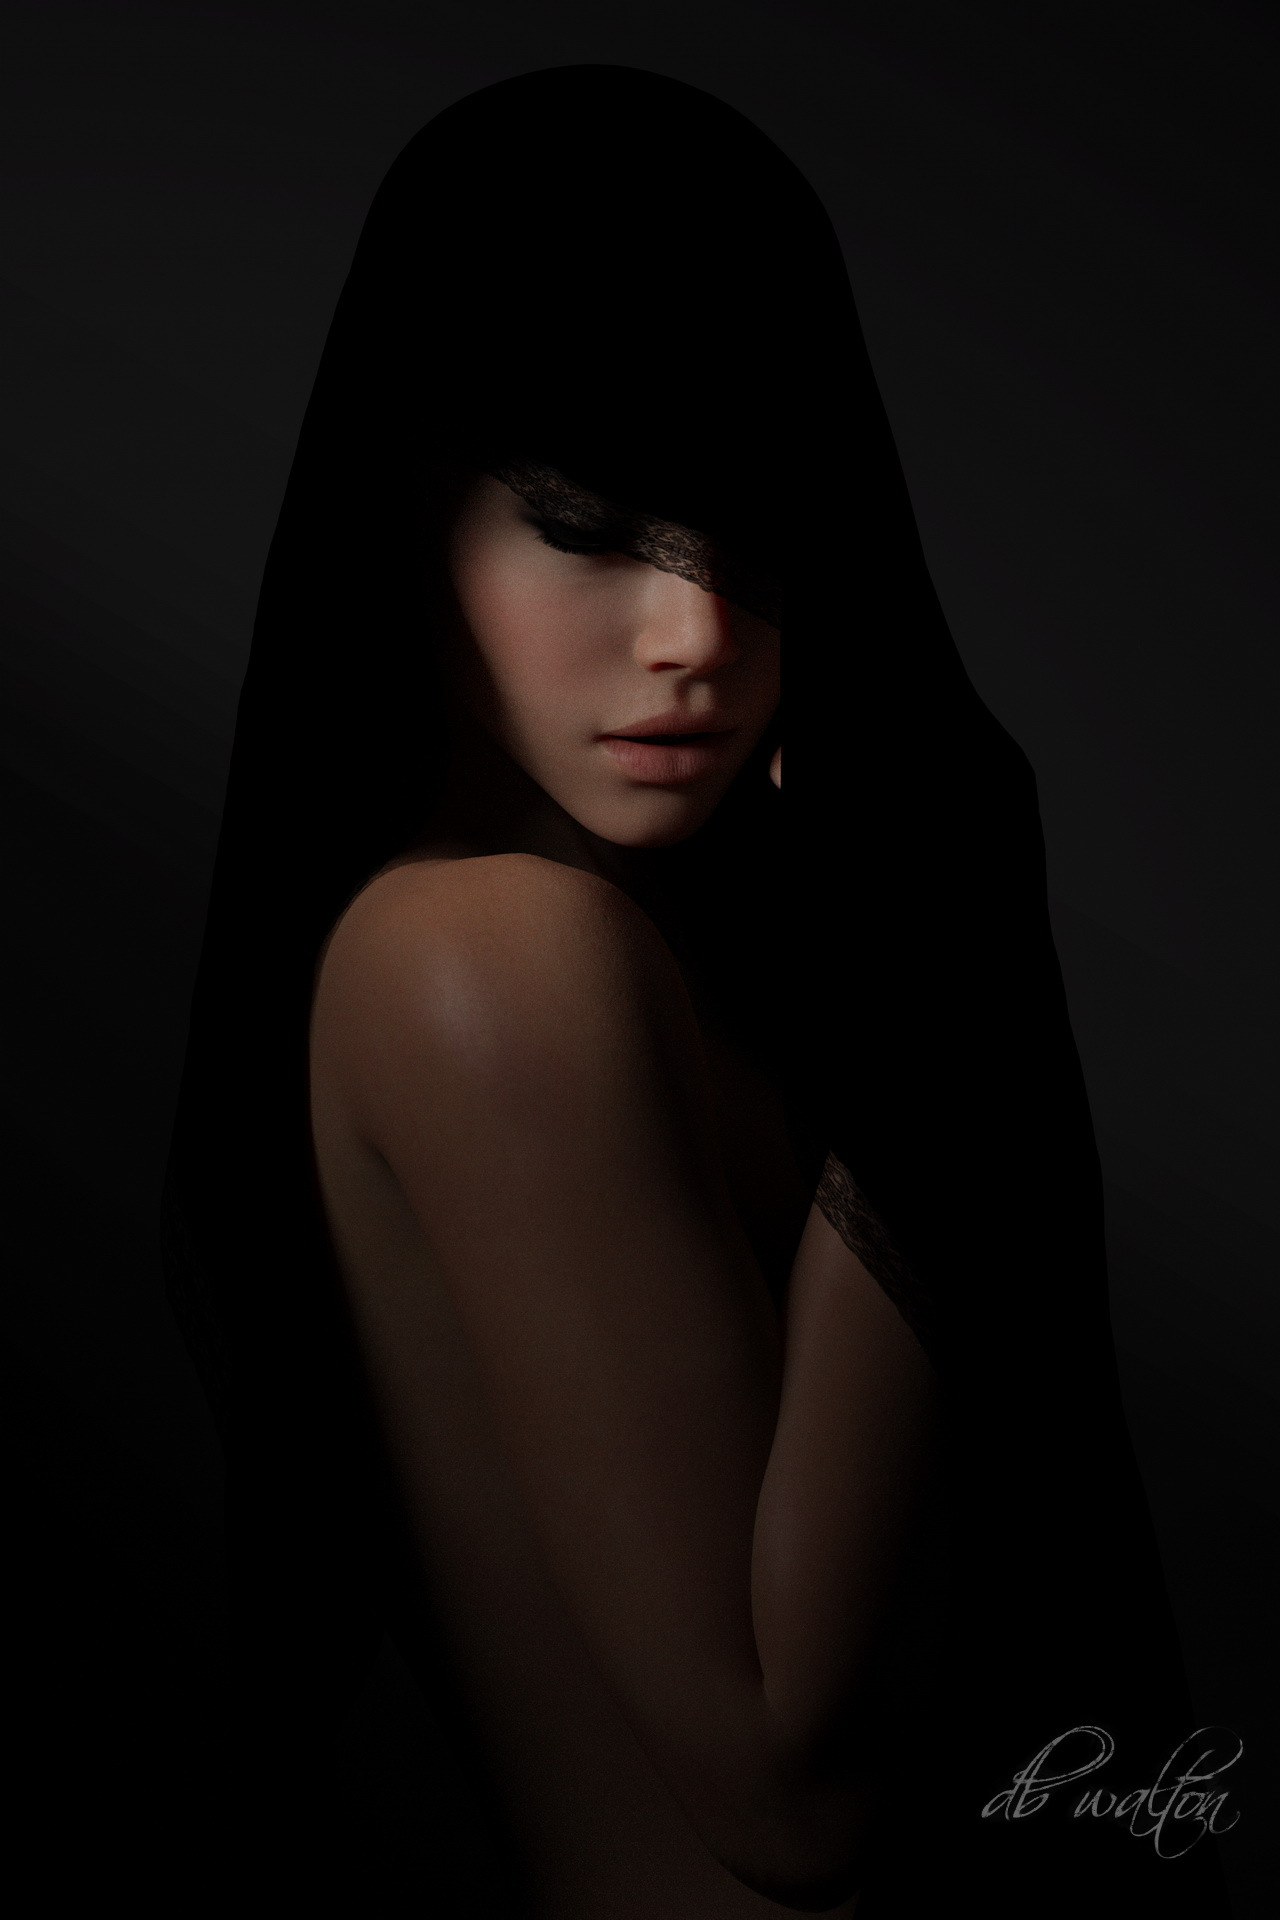 Mysterious Woman 3 by dbwalton